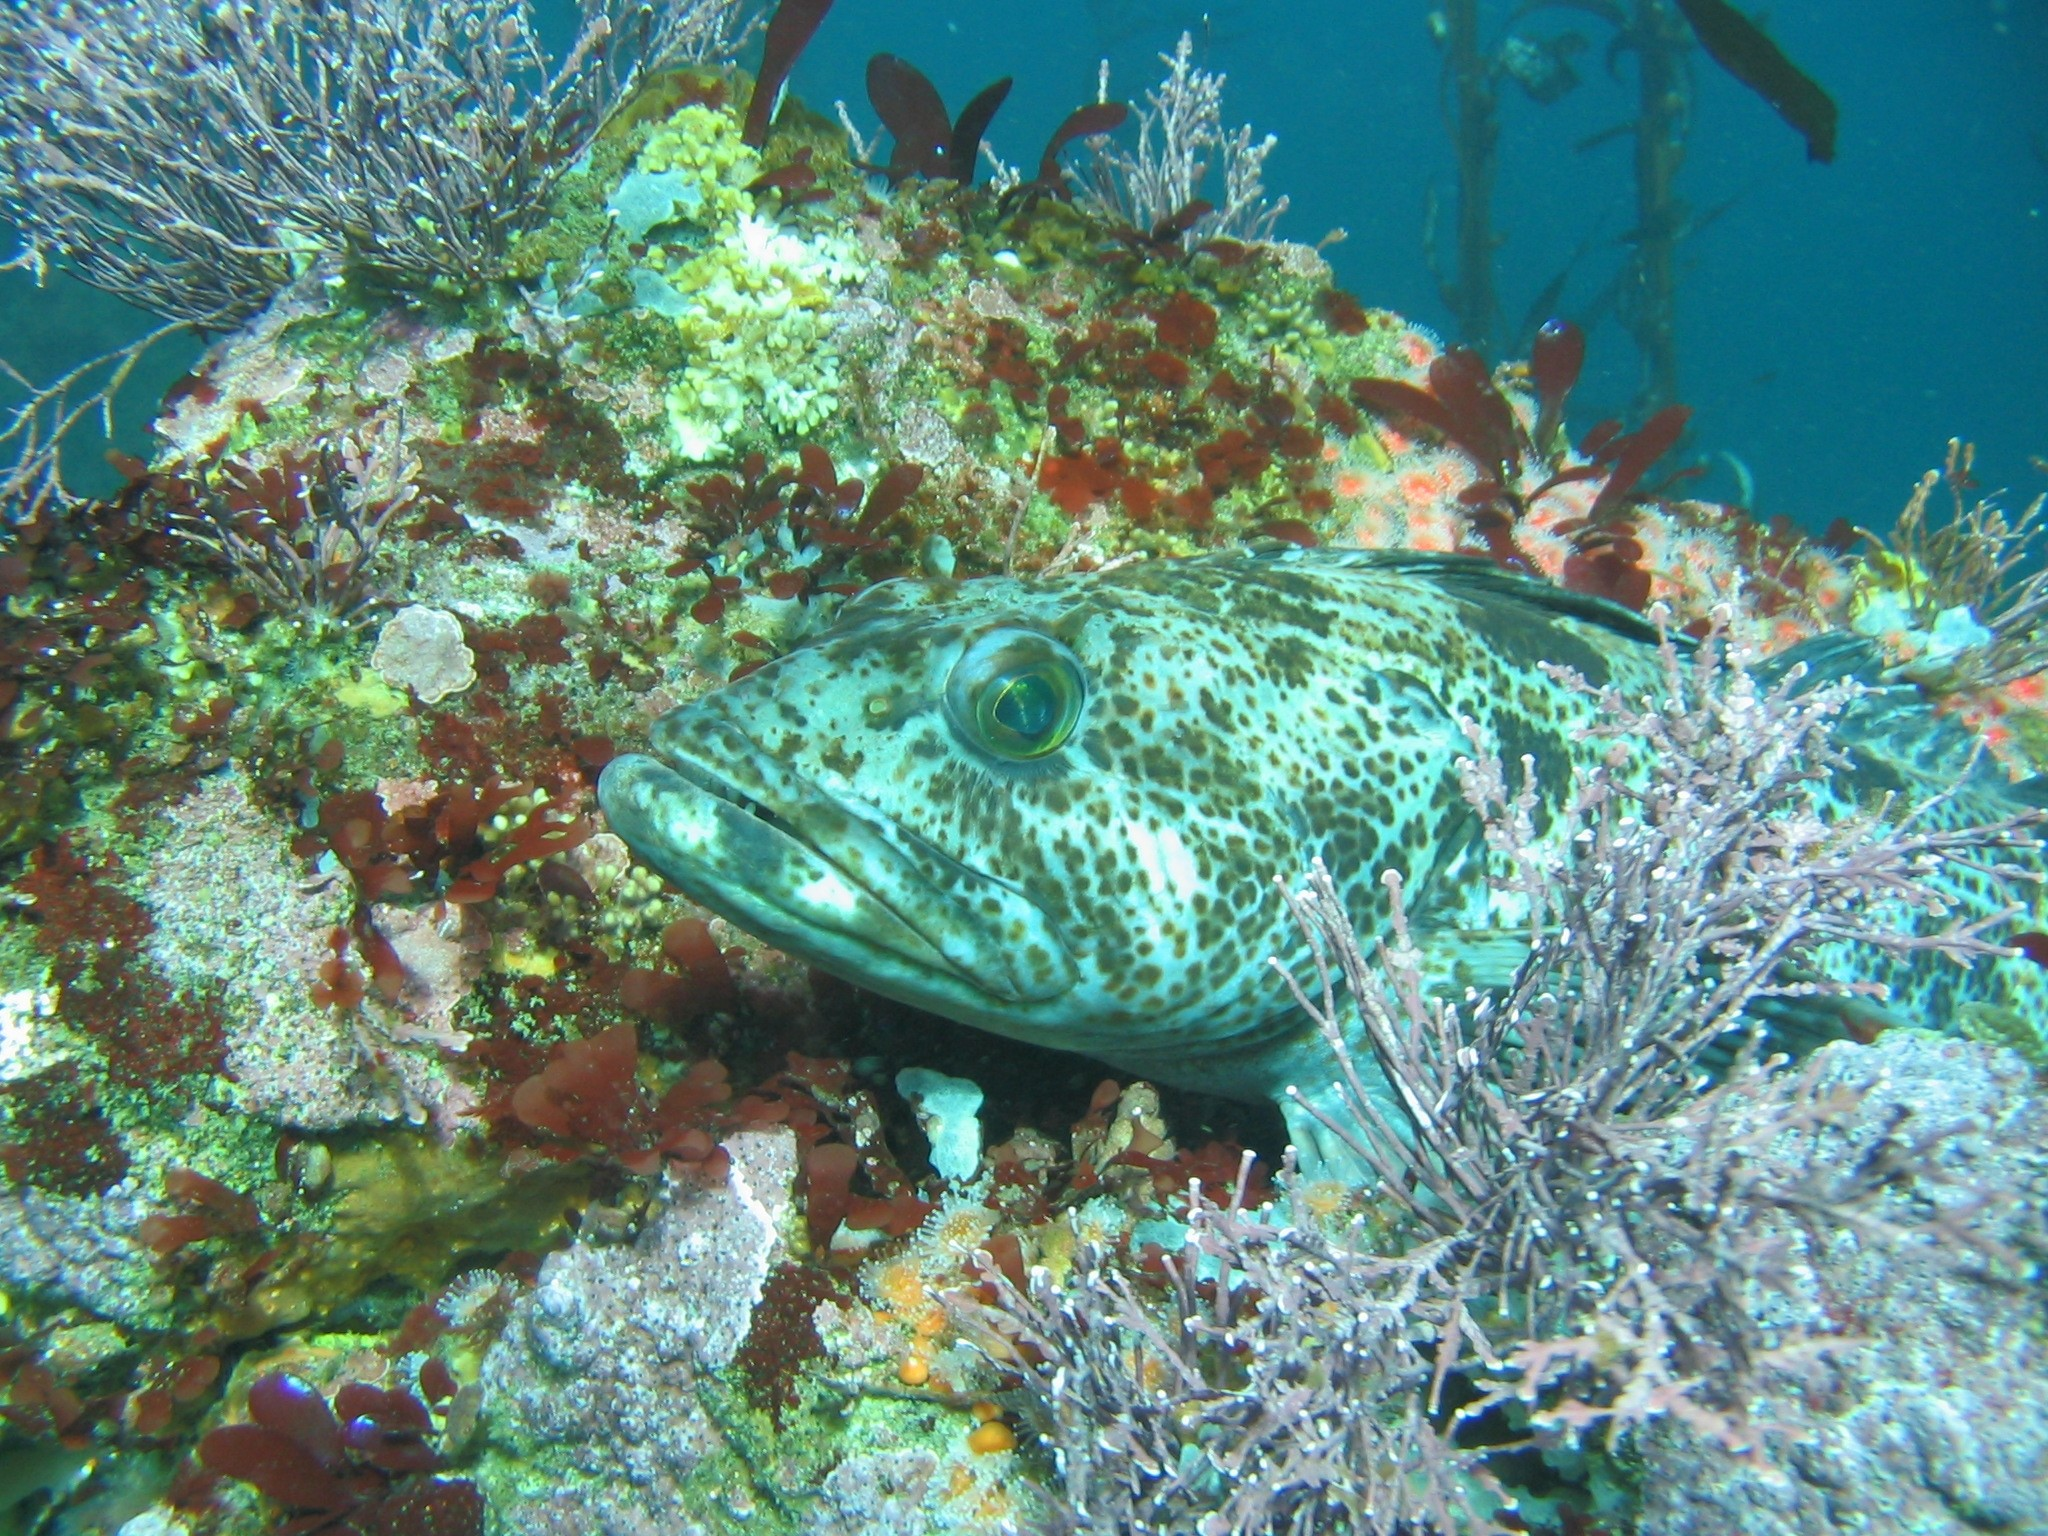 Lingcod; Photo from NOAA